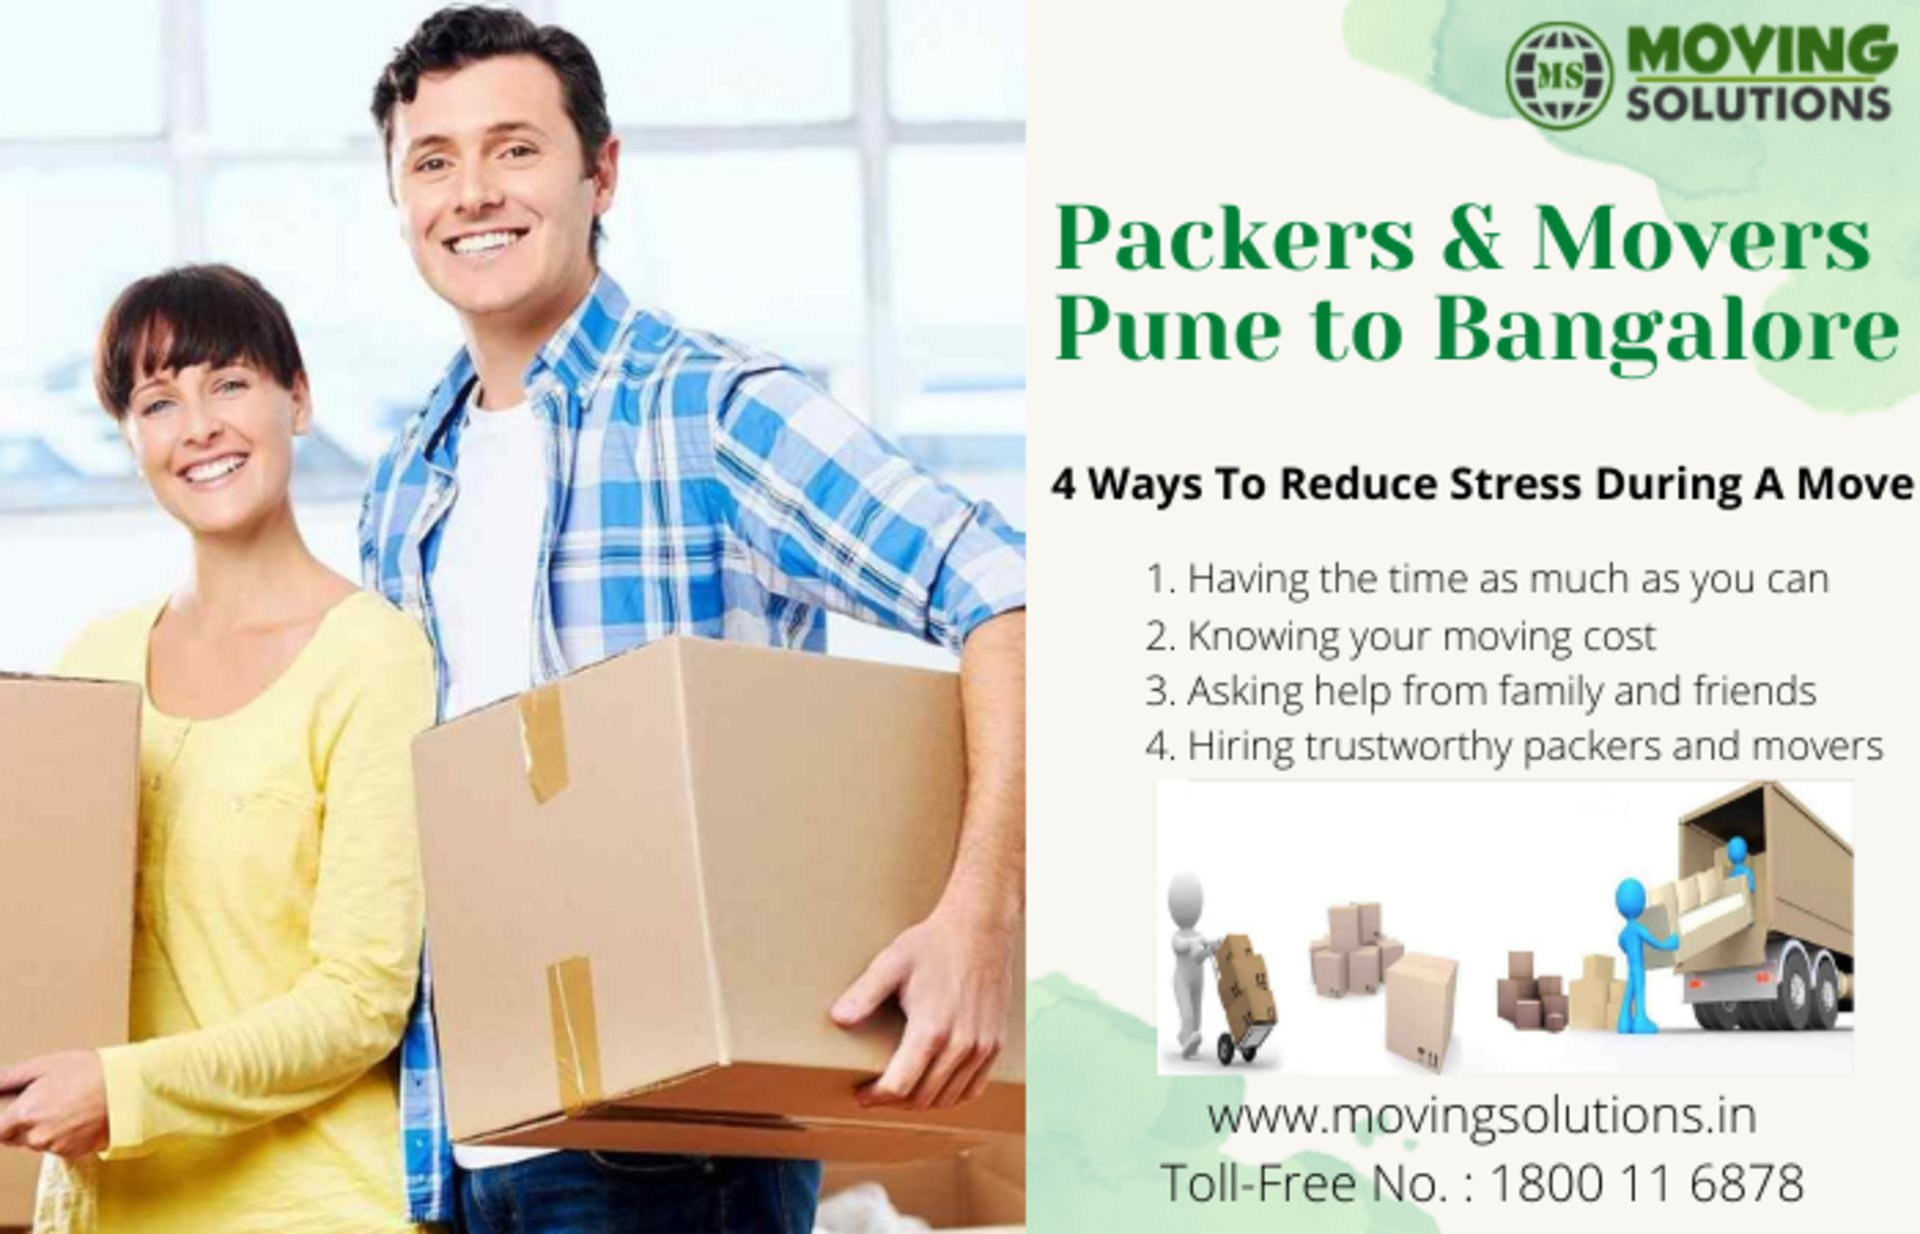 4 Ways To Reduce Stress During A Move